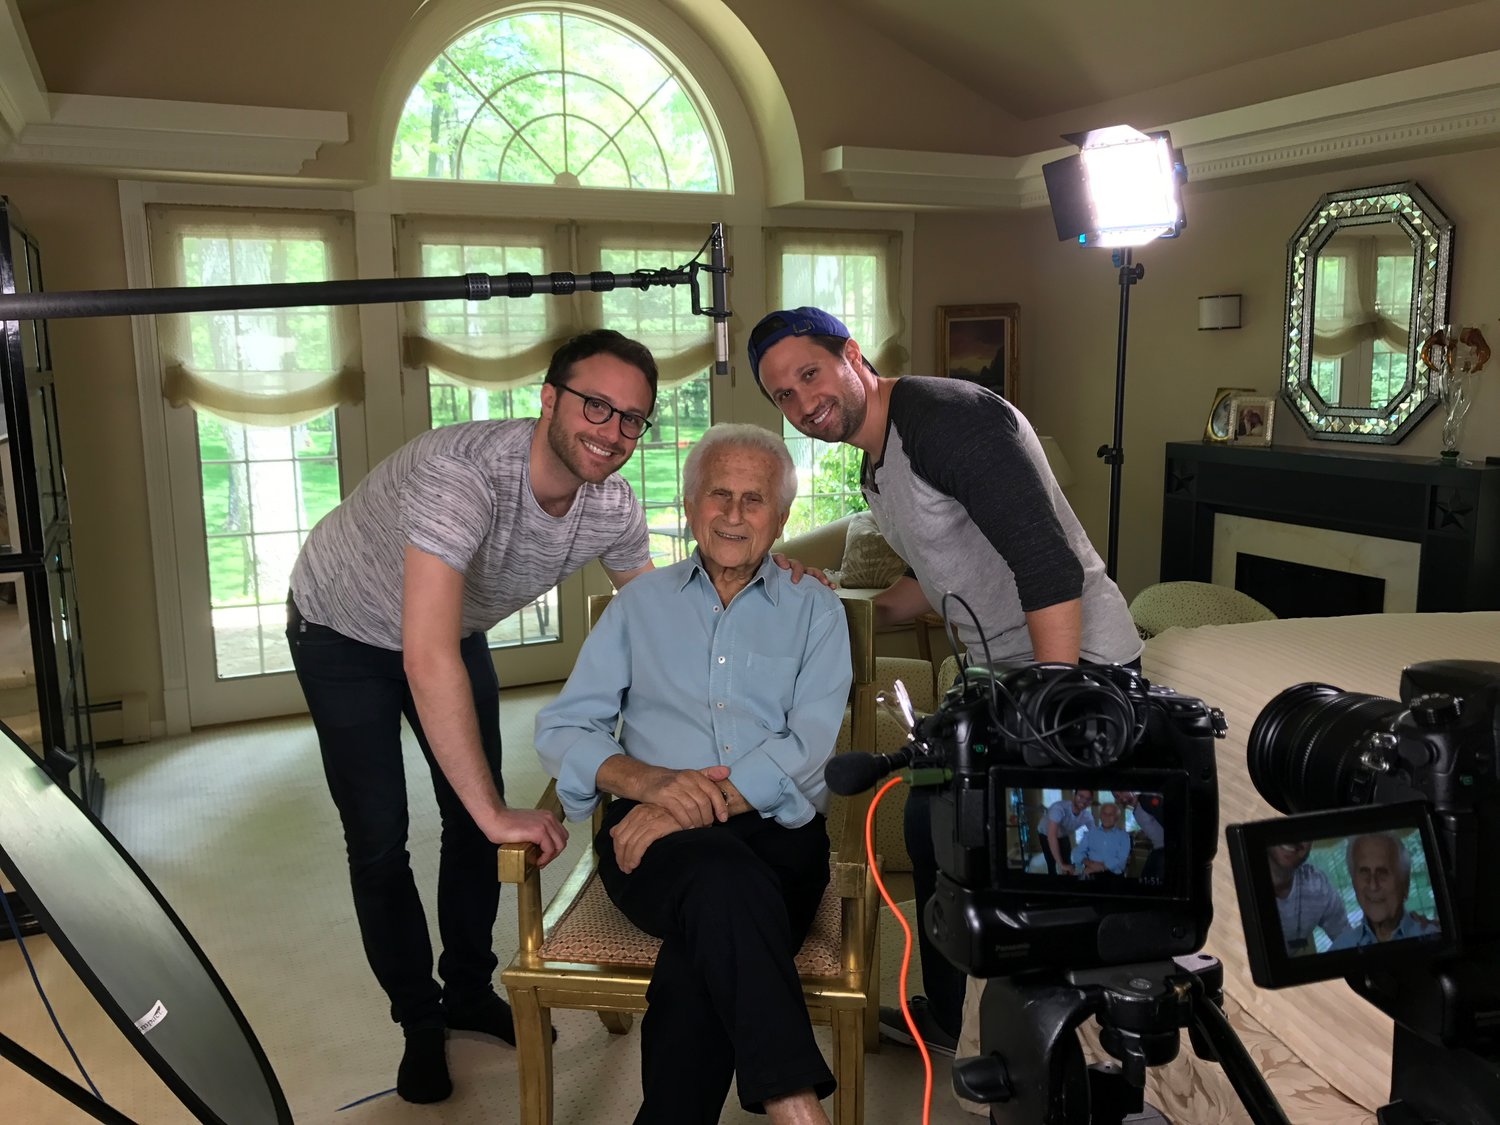 'The Starfish' documentary is a family project. From left, producer Alex Utay, another one of Herb Gildin's grandchildren, Herb, and the director Tyler Gildin.